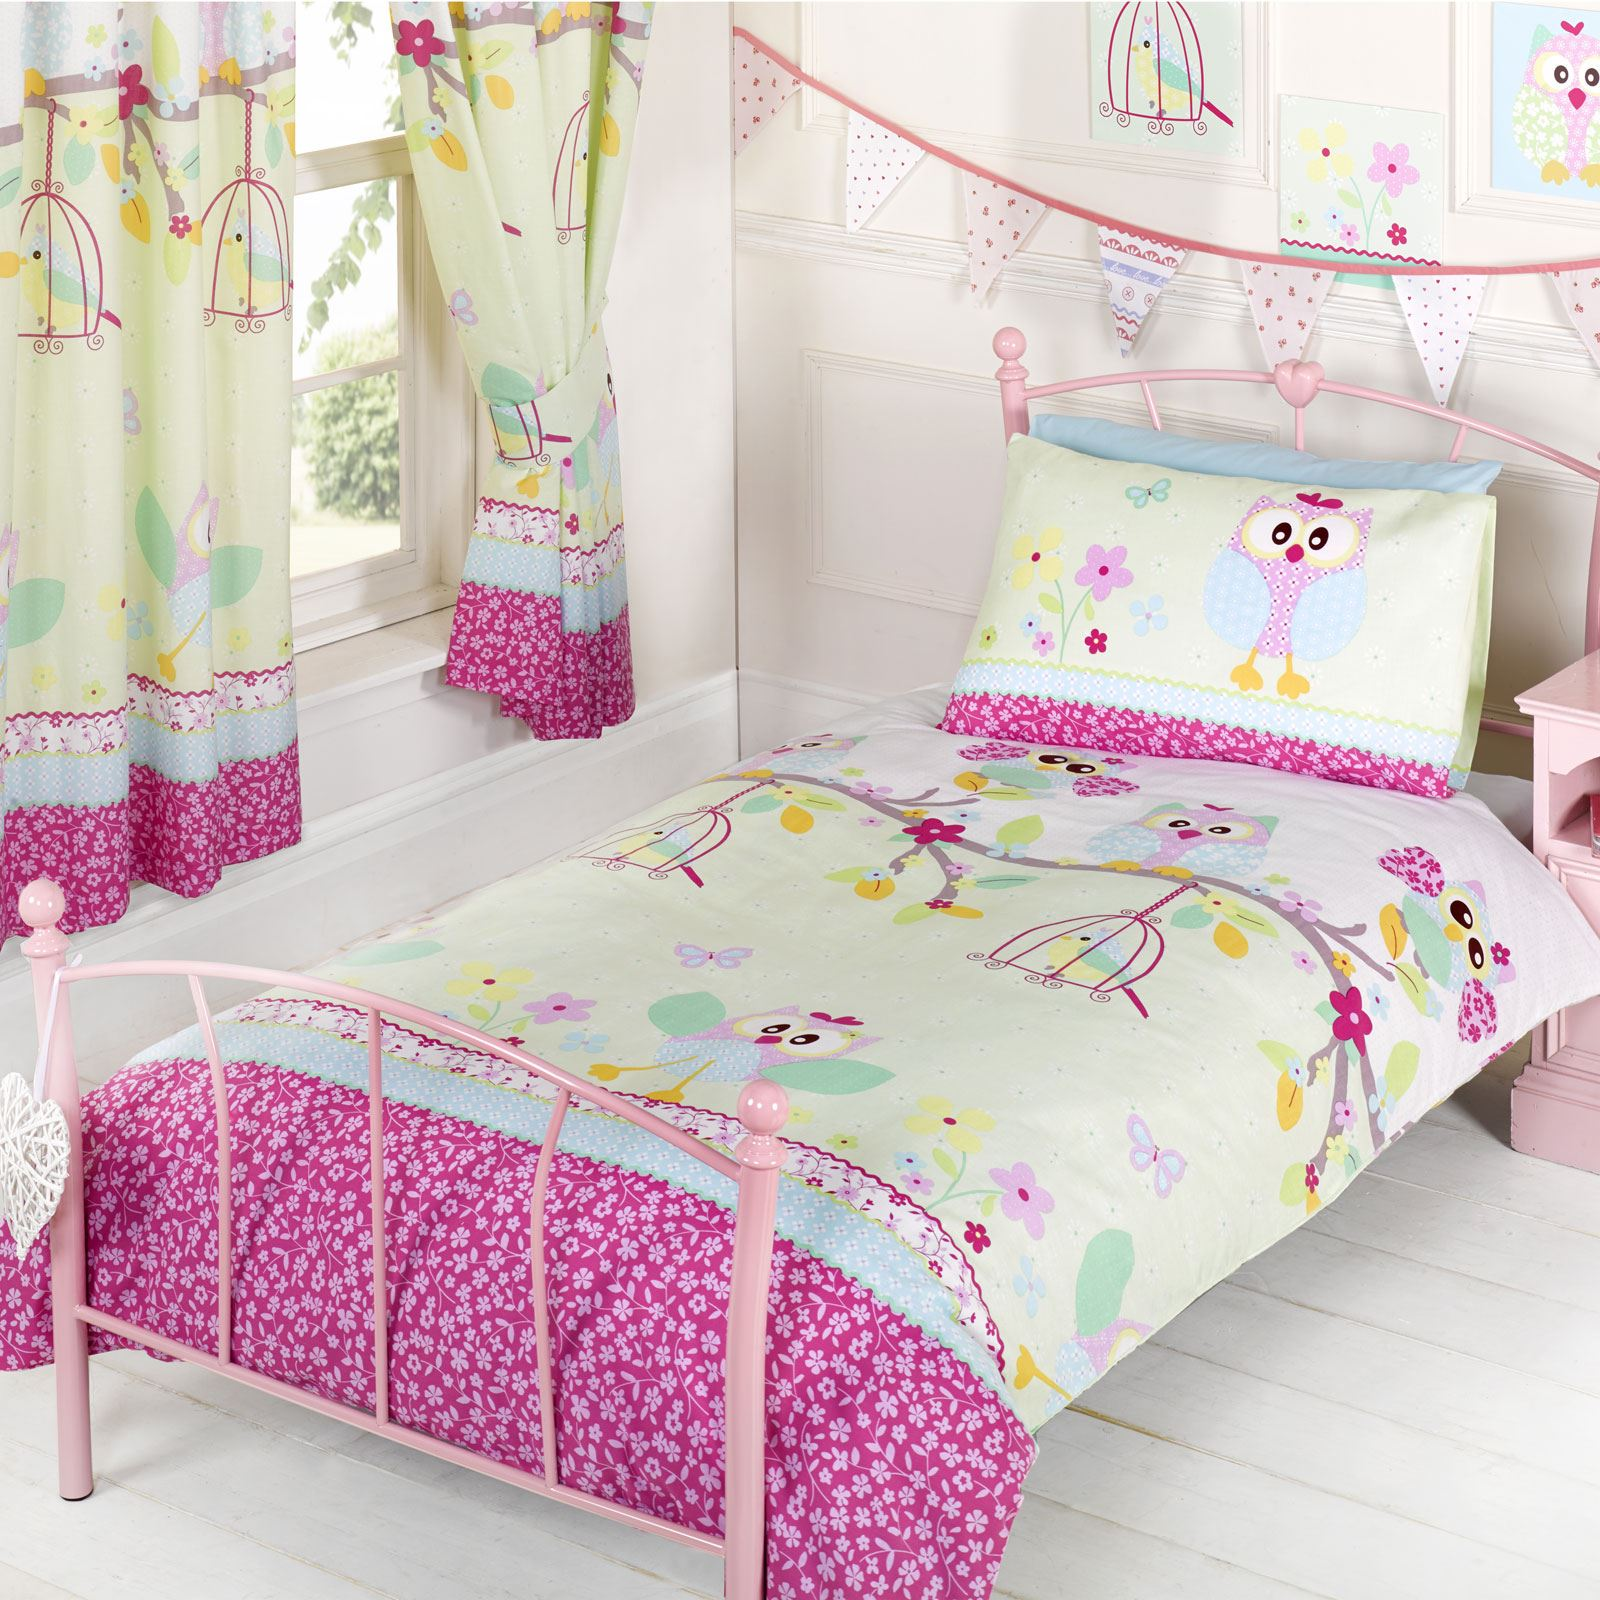 Girls Bedding Owls 39twit Twoo 39 Single Duvet Cover Set New Girls Bedding